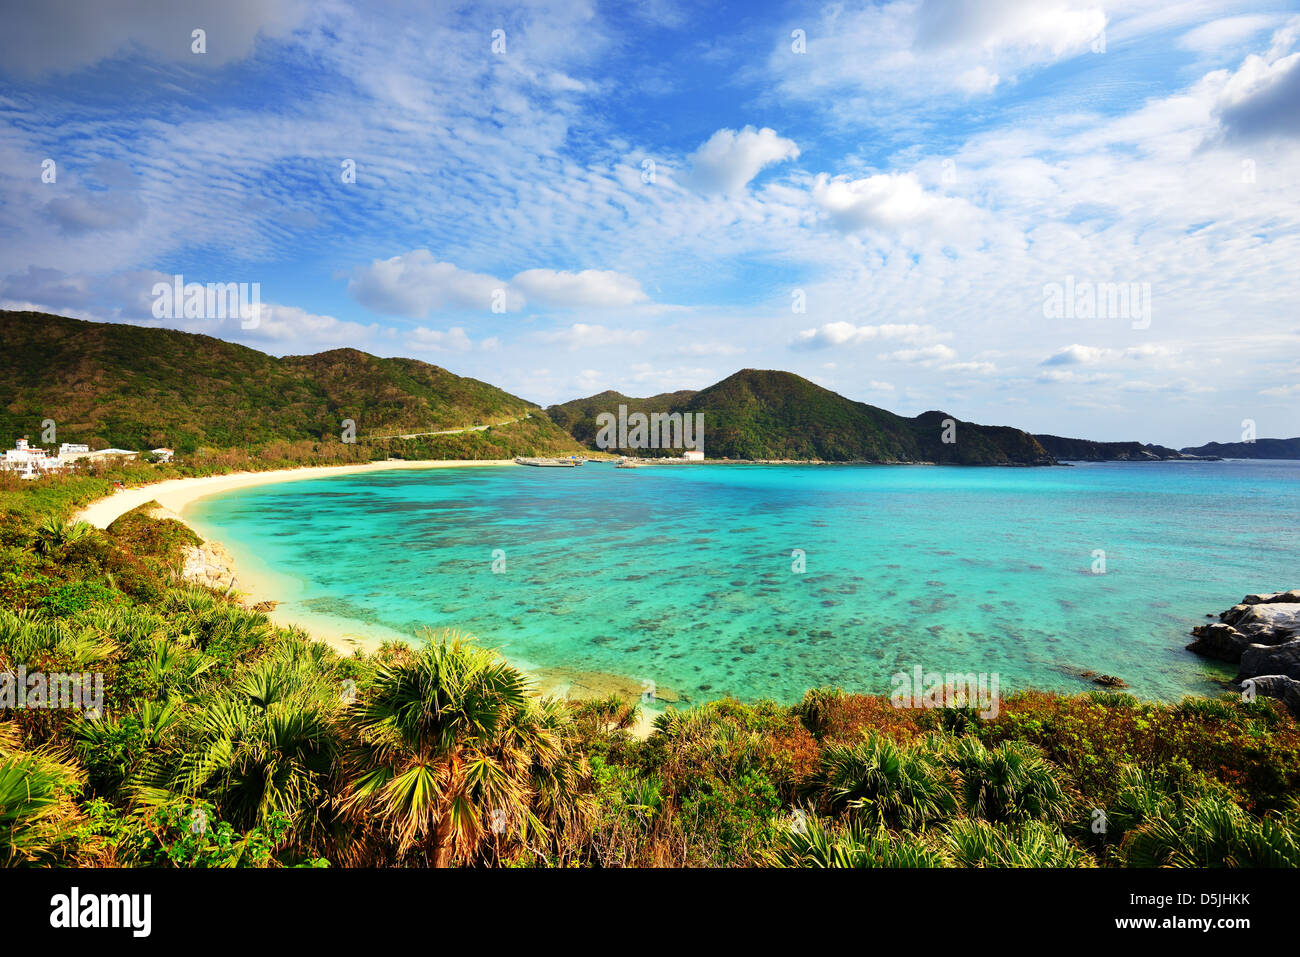 Aharen Beach on the island of Tokashiki in Okinawa, Japan. - Stock Image